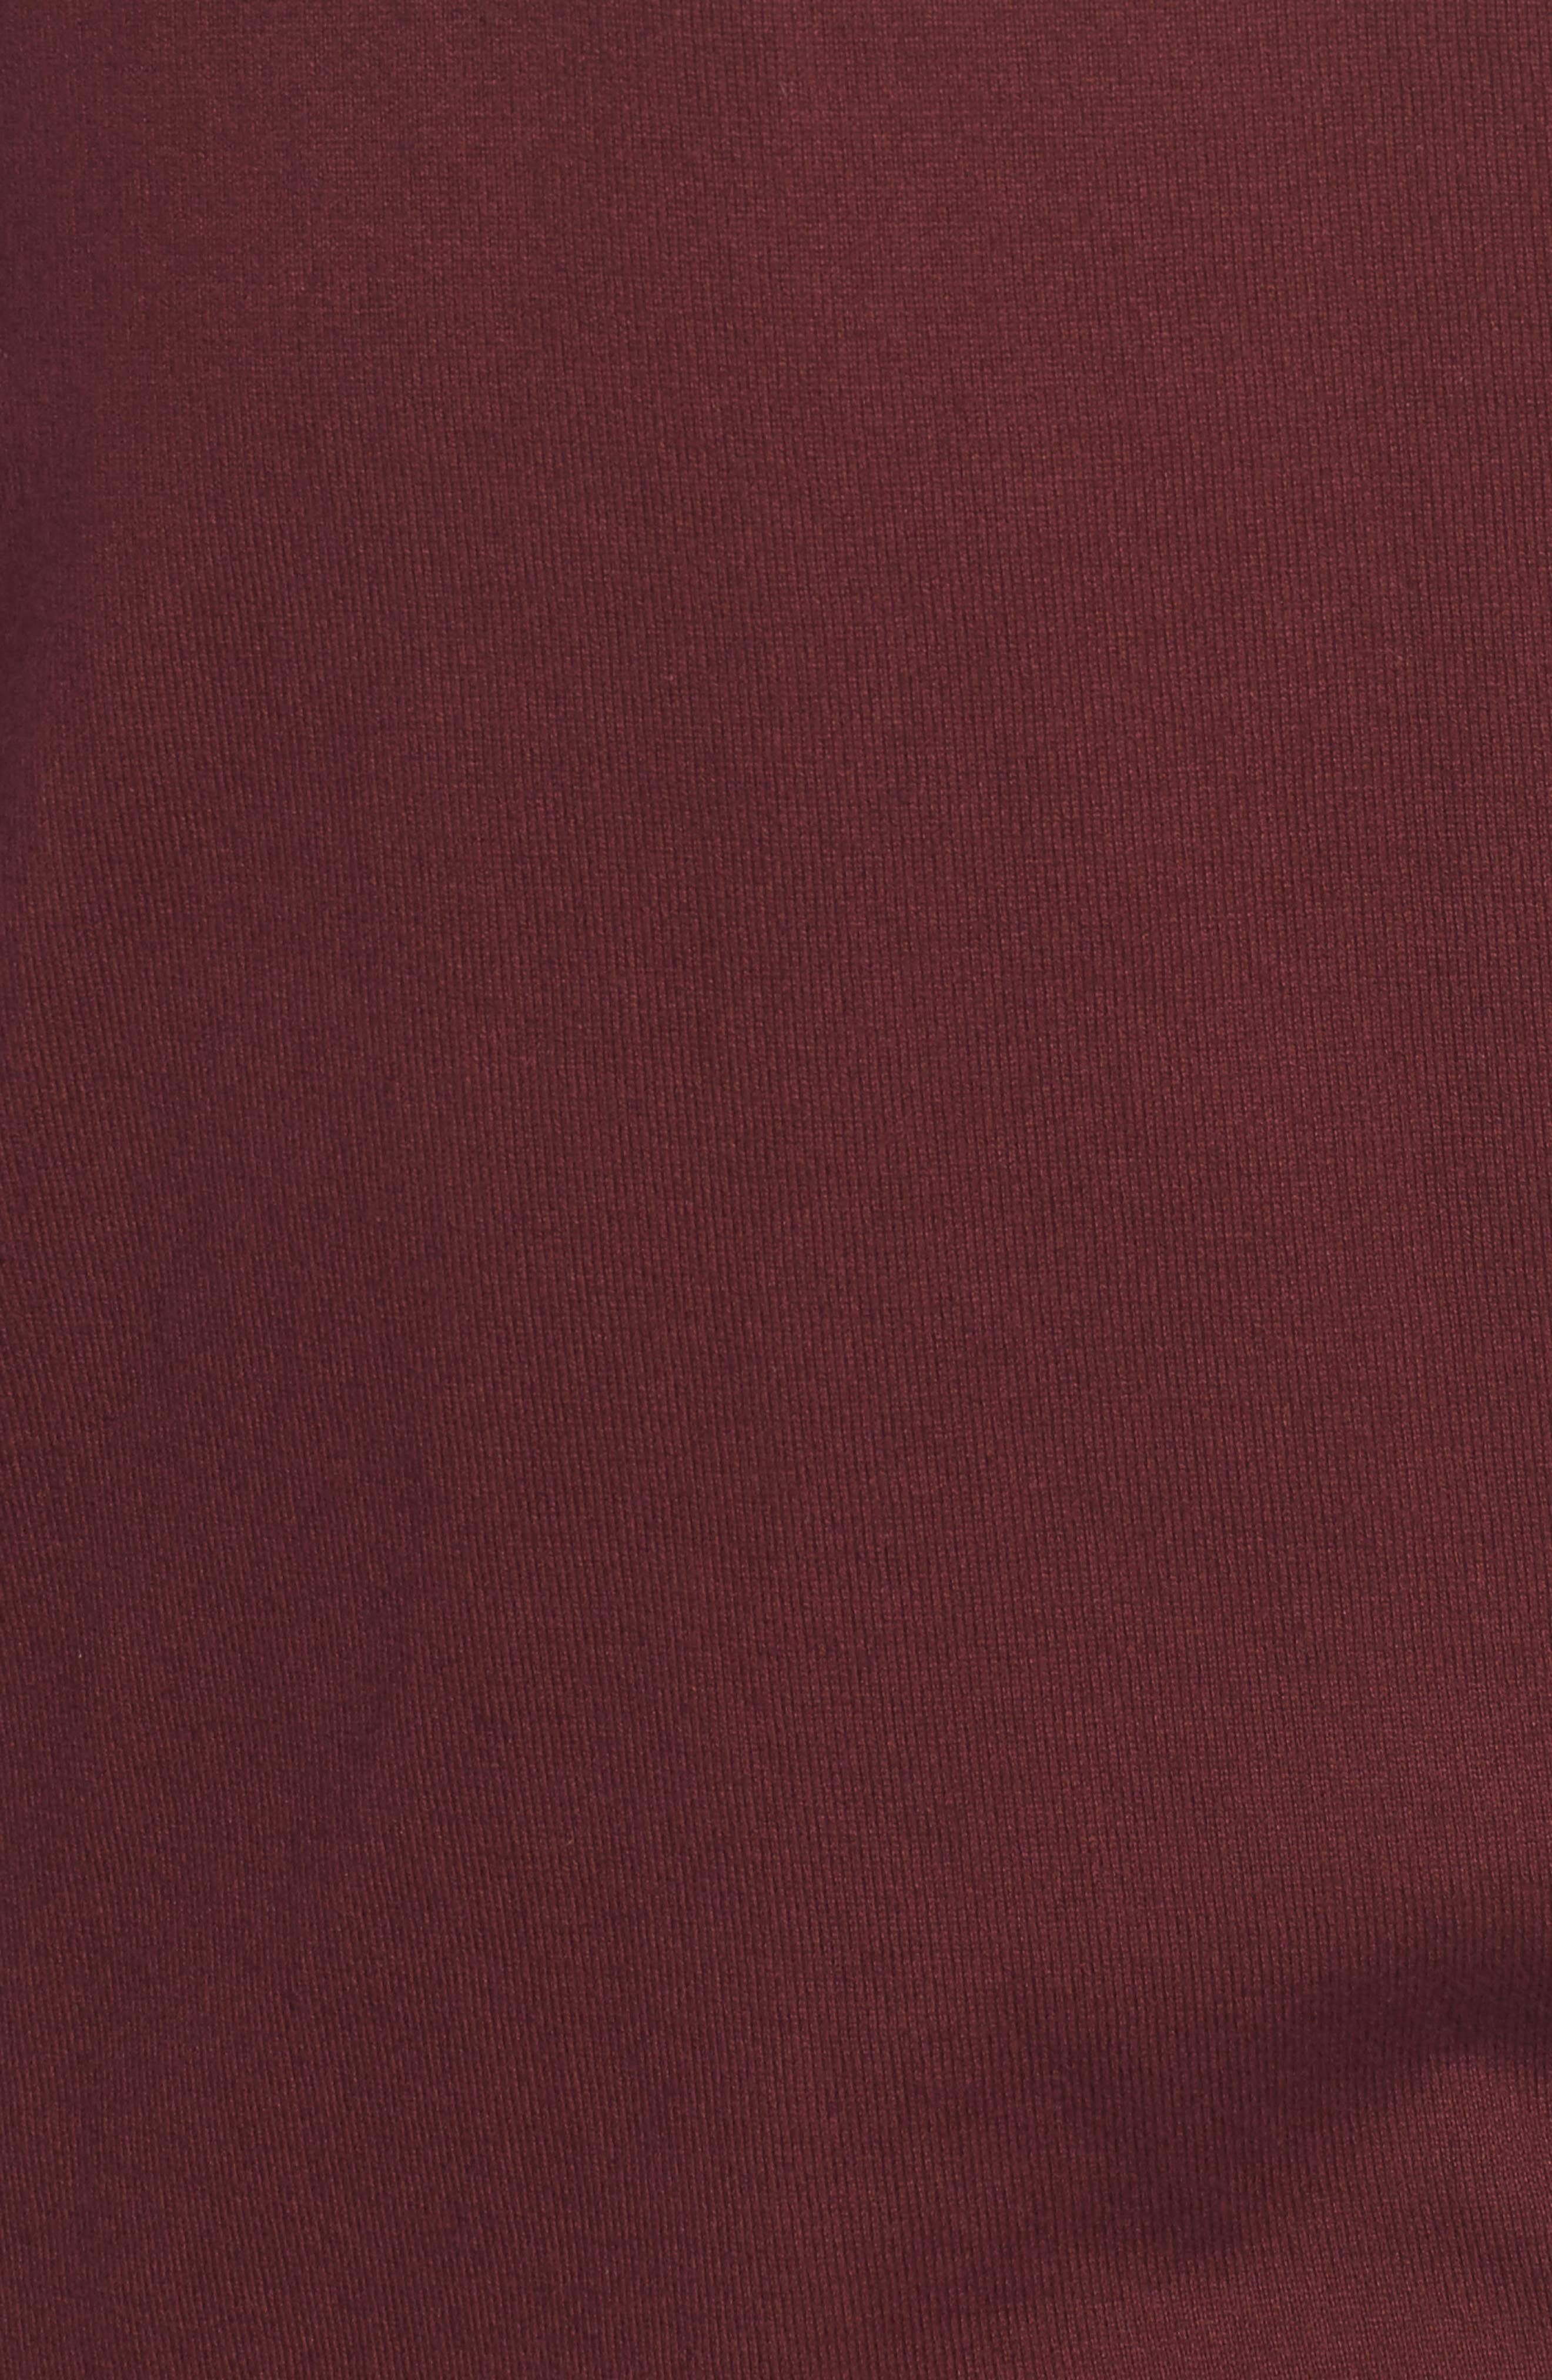 Heavy Hitter Shirt,                             Alternate thumbnail 5, color,                             Tawny Port